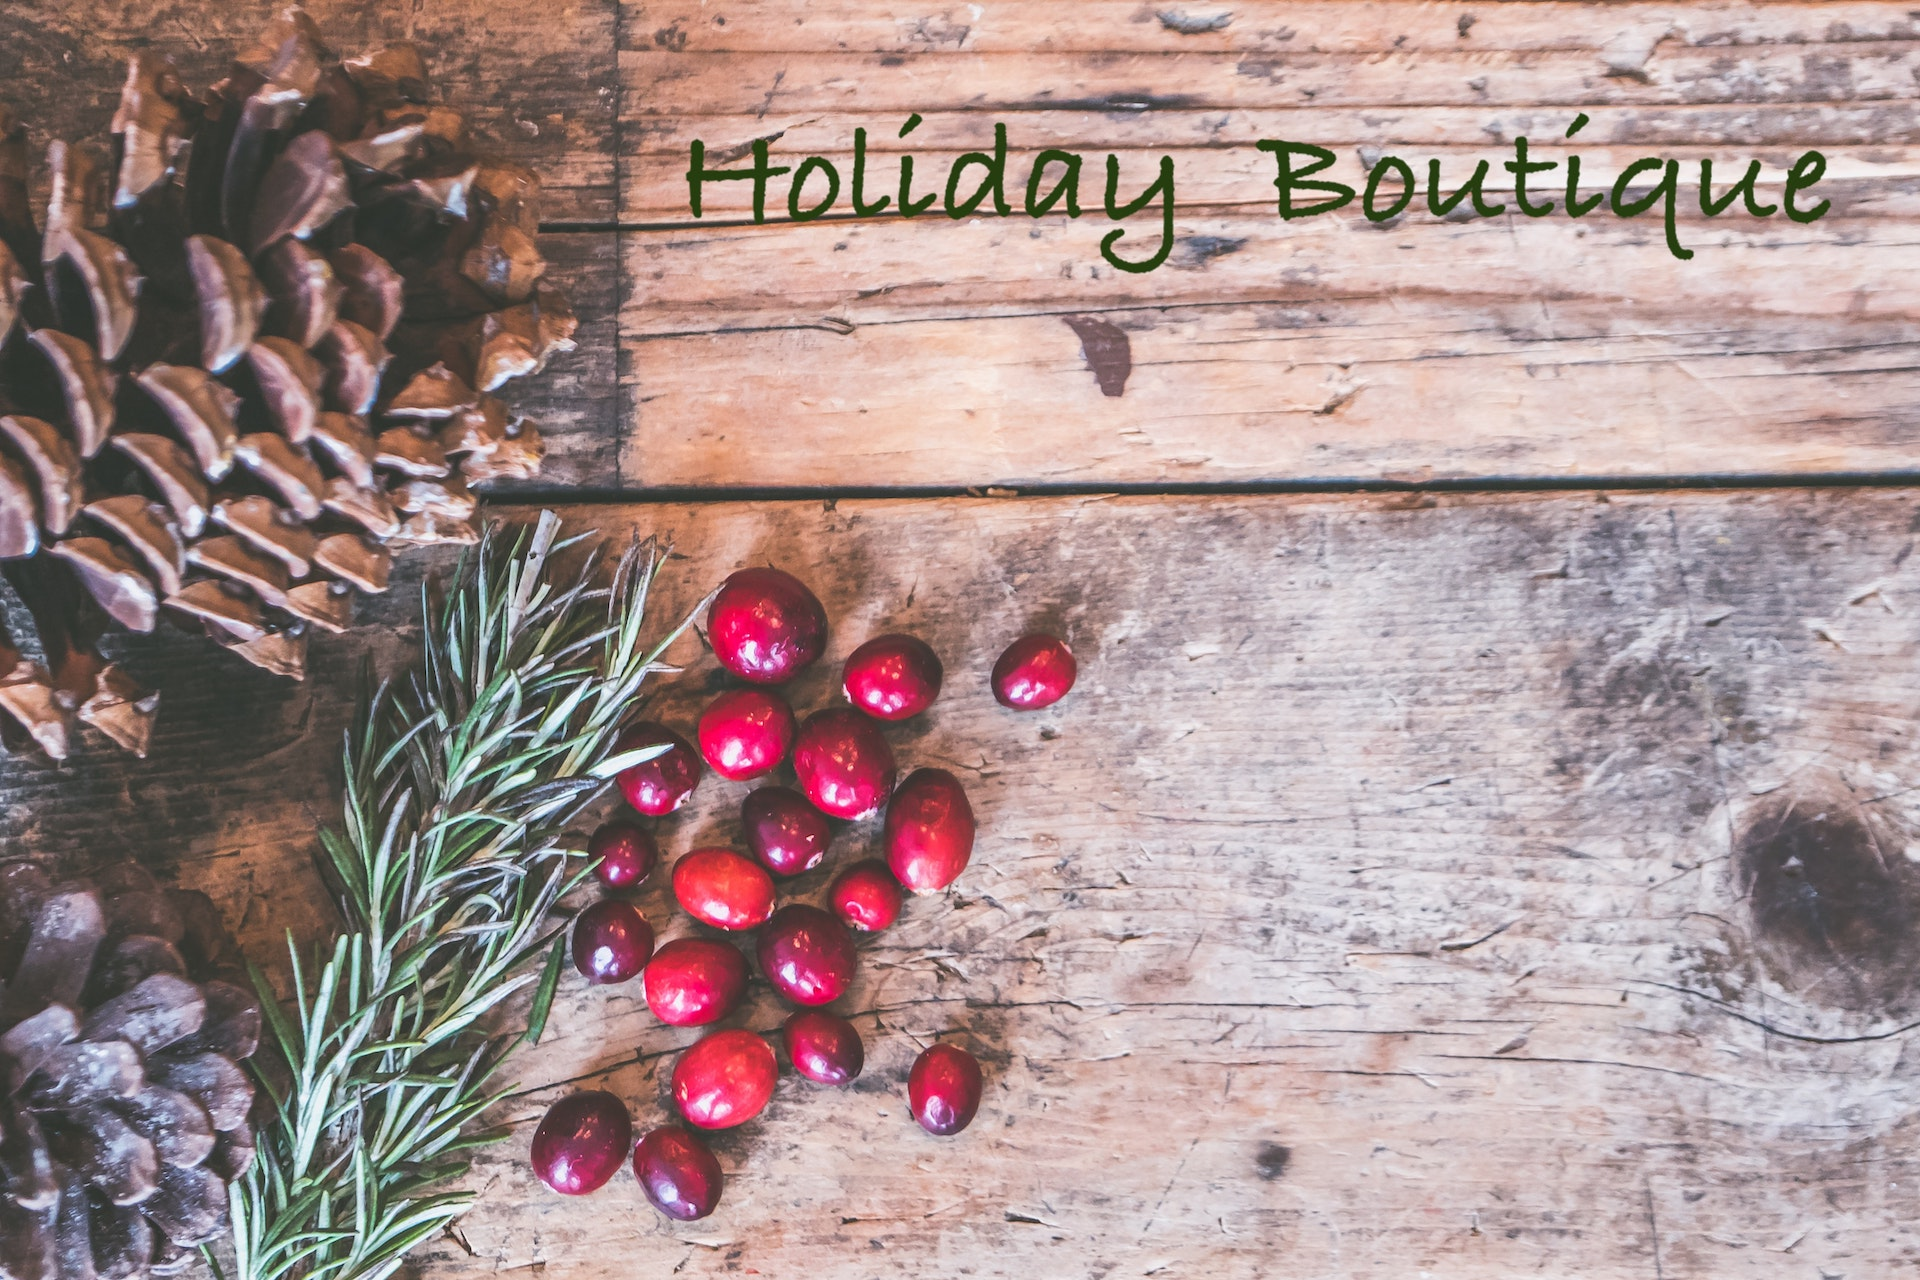 Holiday Gathering and Boutique